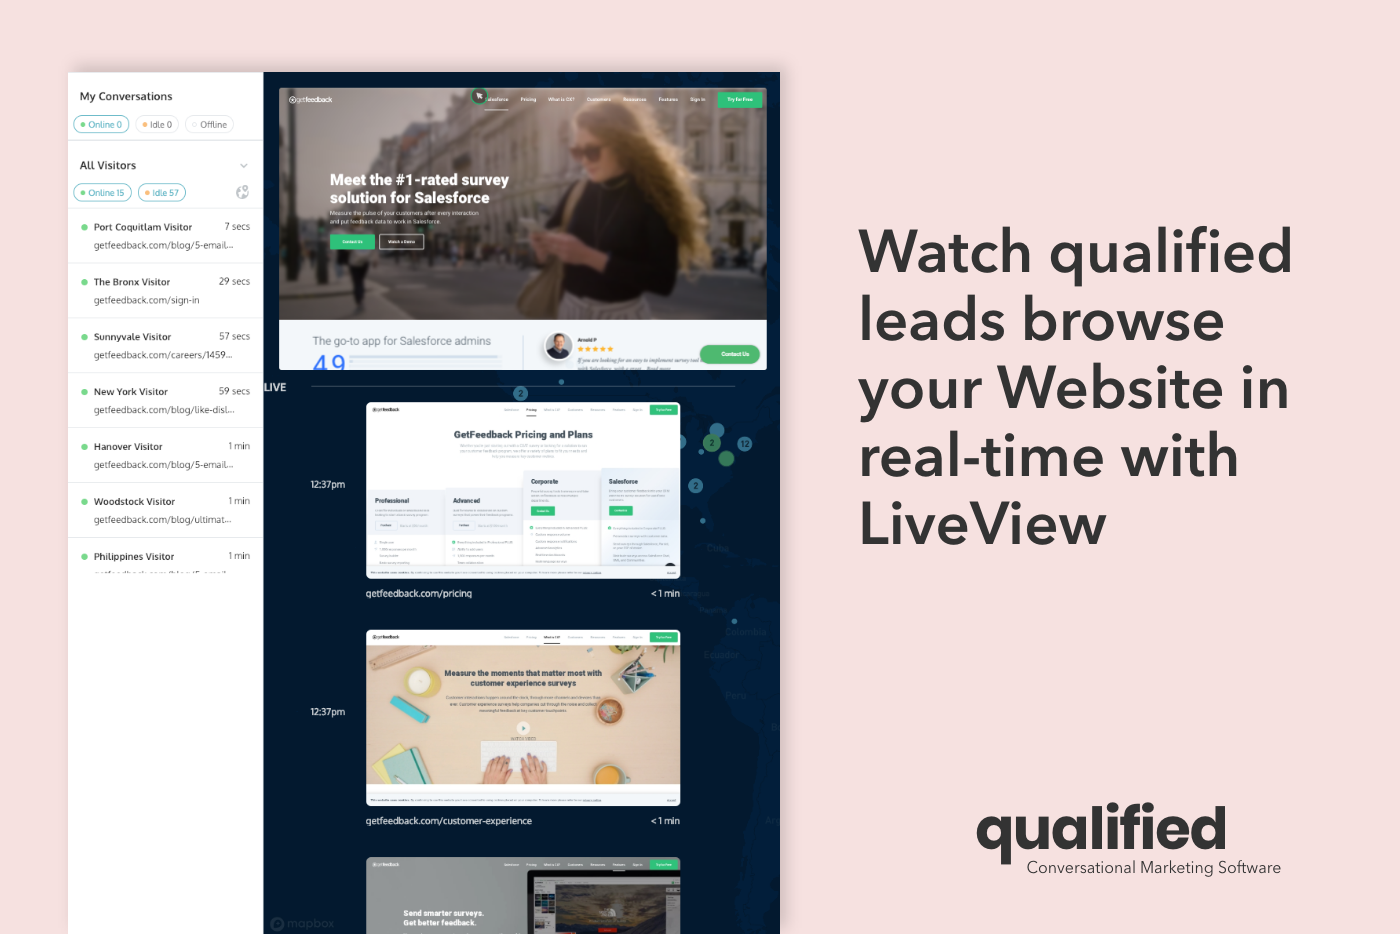 Qualified Demo - LiveView - Watch qualified leads browse your site